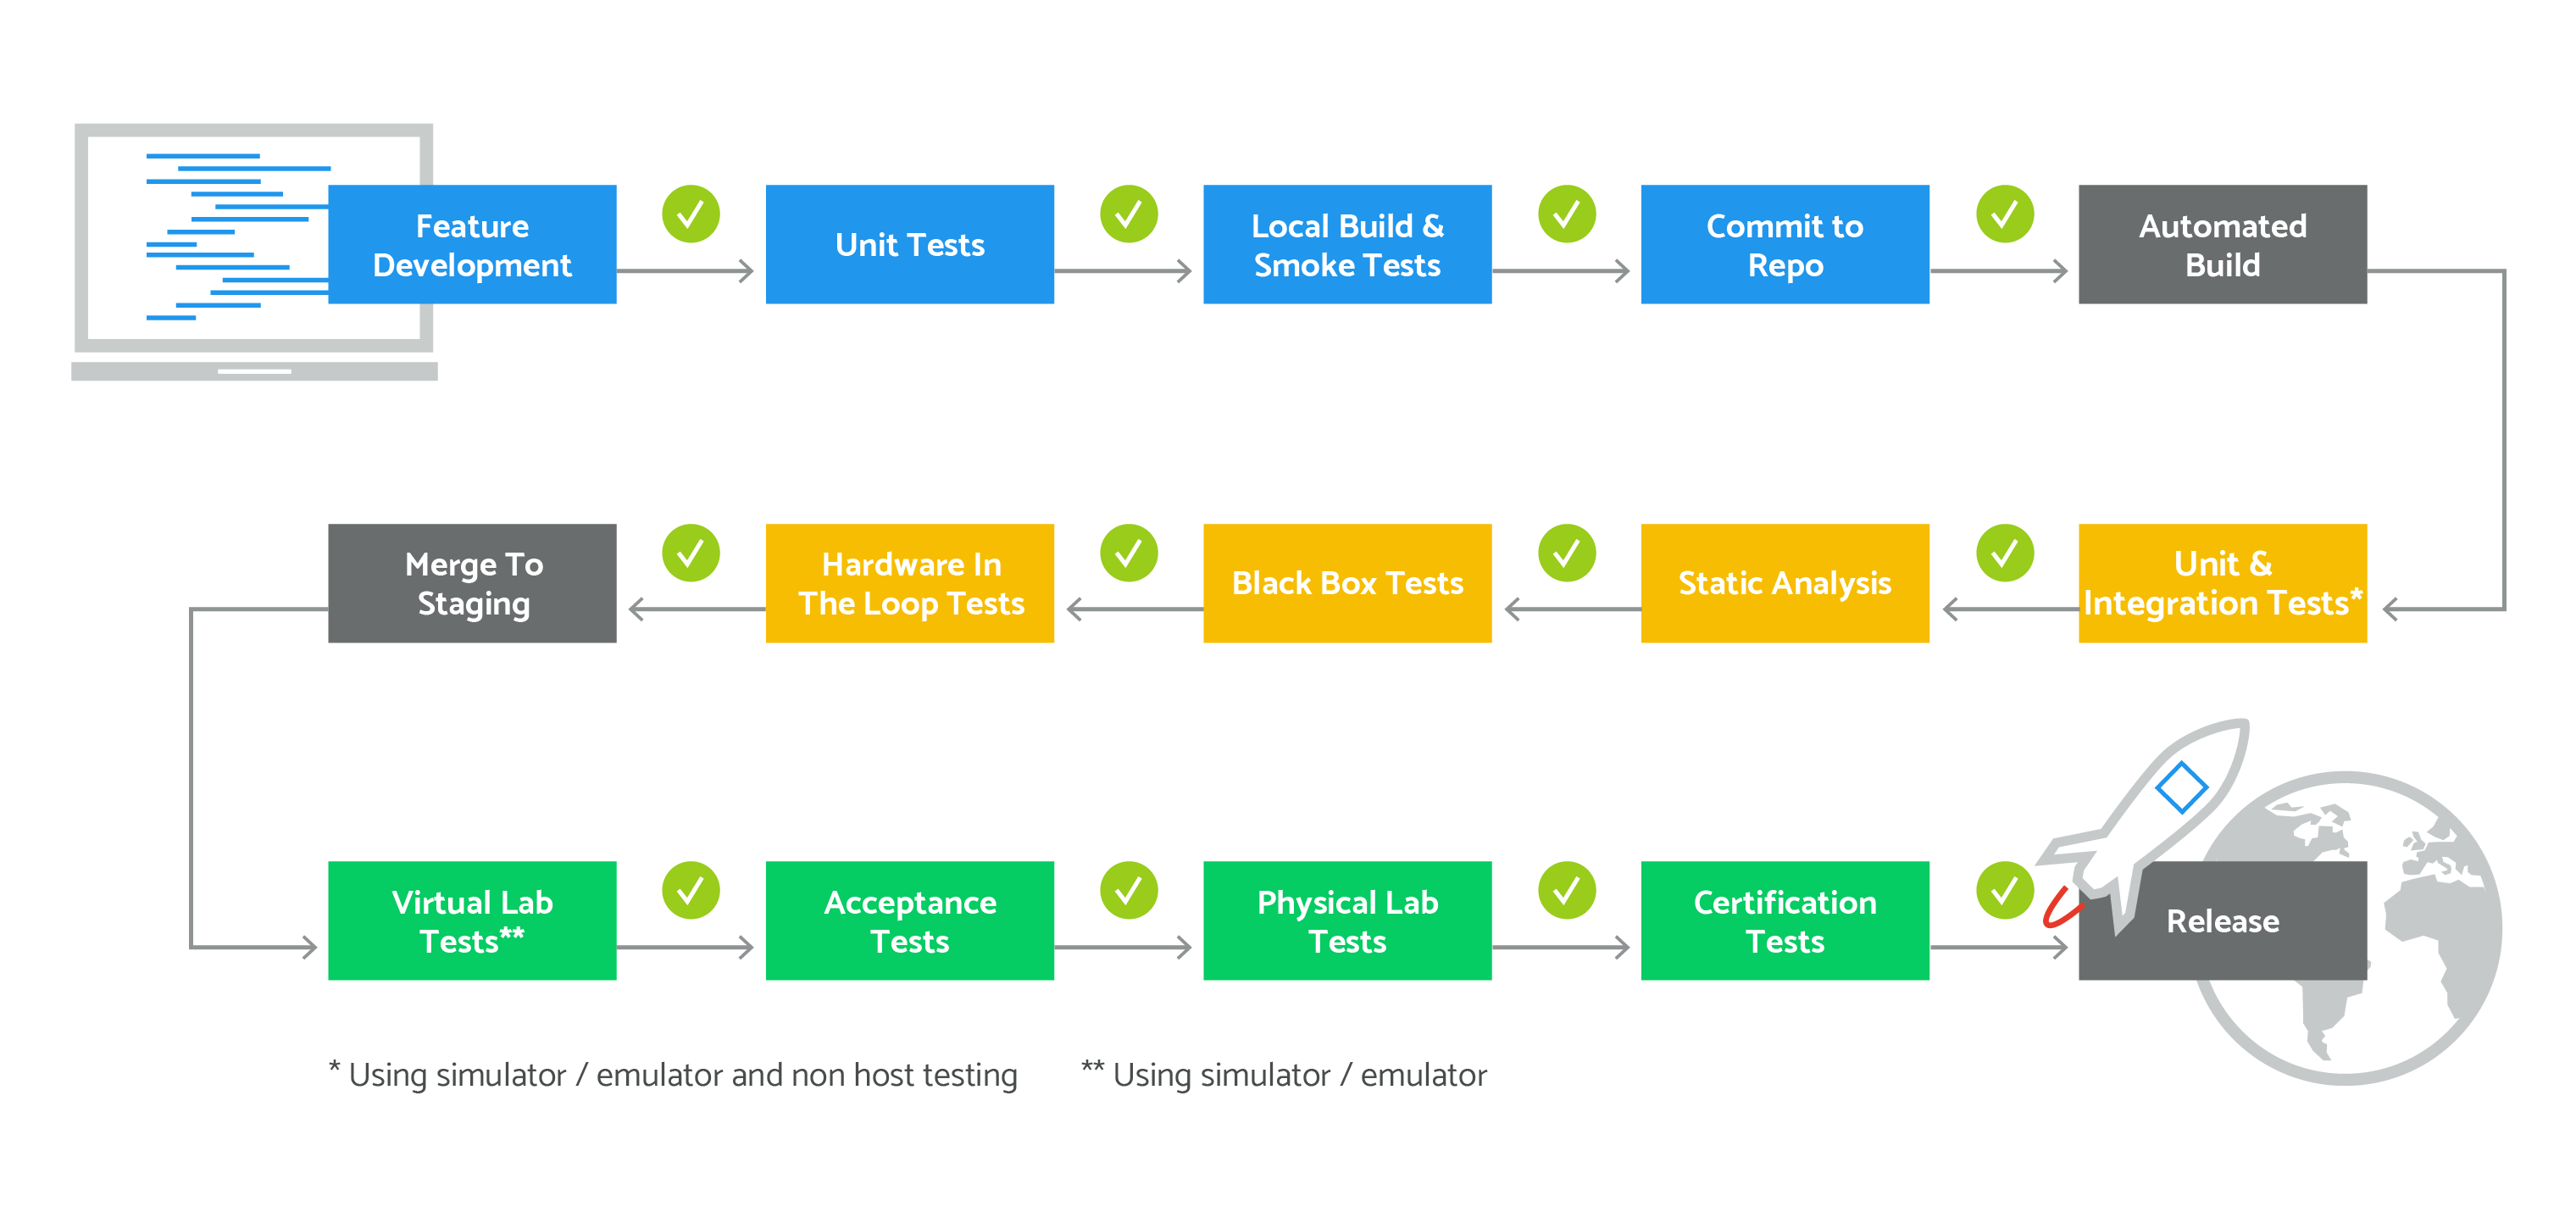 How to Build a Continuous Integration and Delivery Process